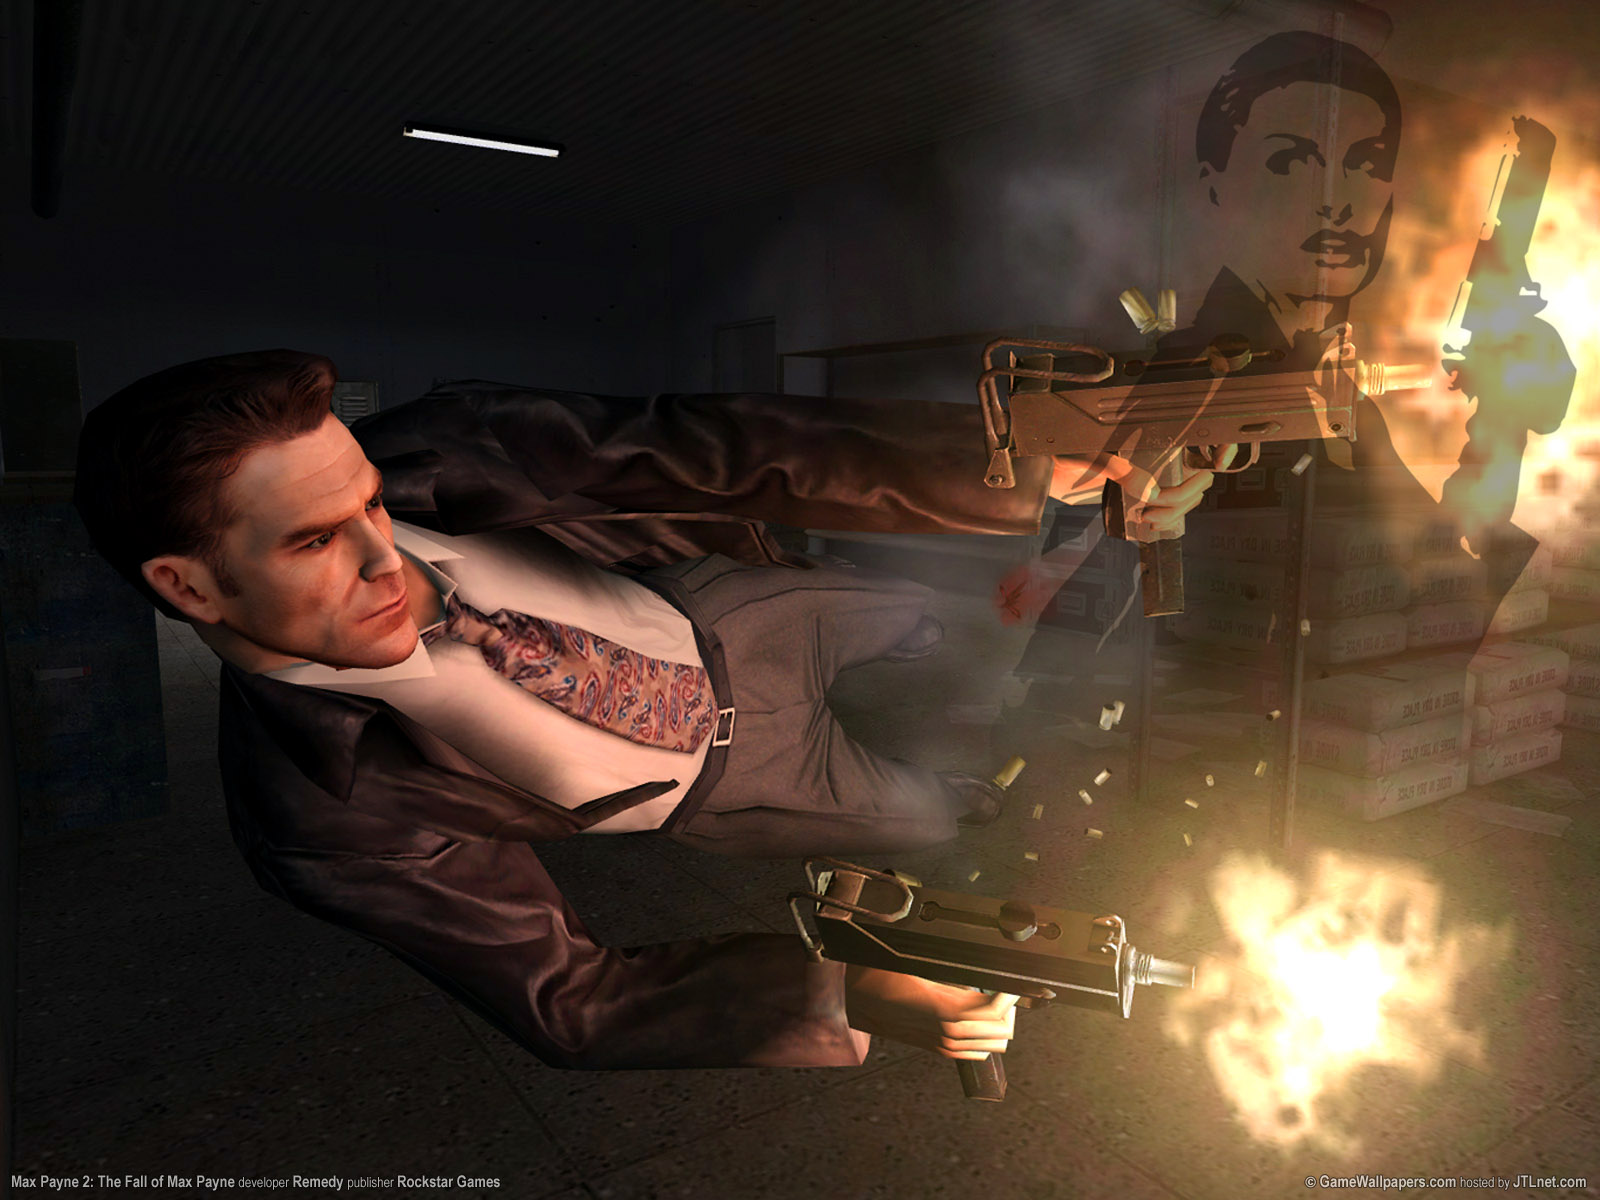 Max Payne 2 The Fall Of Max Payne Wallpaper Max Payne 2 Game Free Download Ocean Of Games